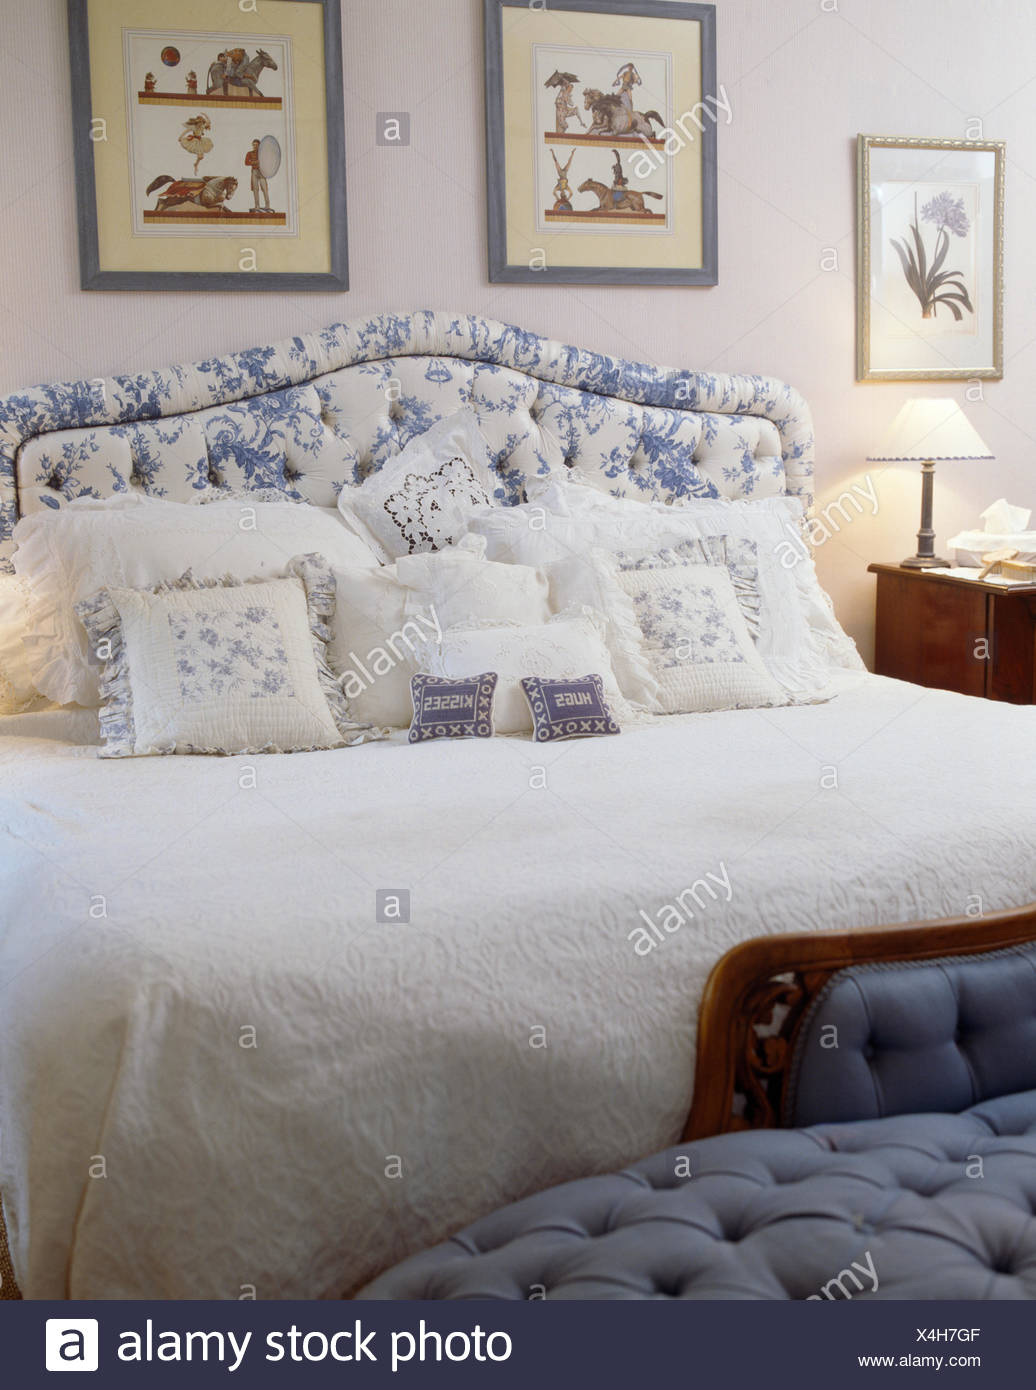 Picture of: Blue White Upholstered Headboard On Bed With White Quilt And Blue And White Cushions In Country Bedroom Stock Photo Alamy